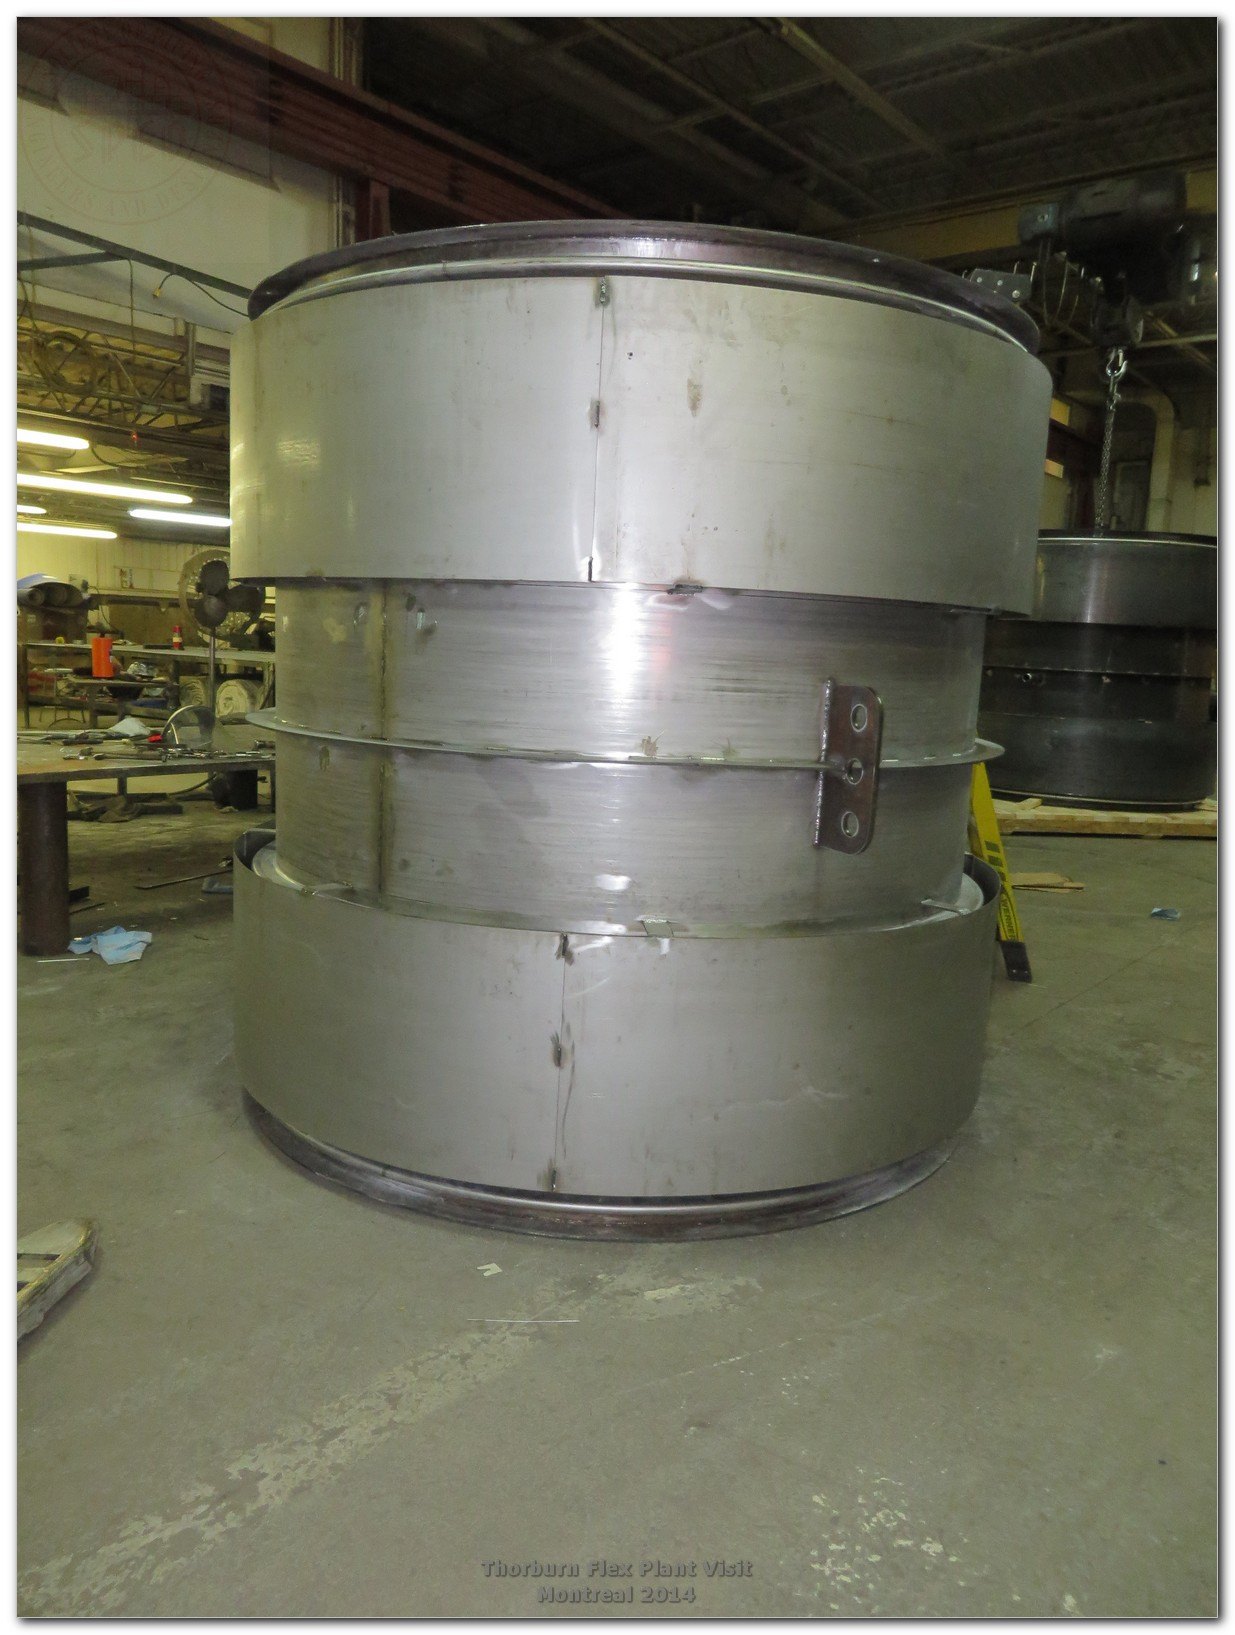 Universal metallic bellows expansion joint for air ducting application with stainless steel spool pipe and covers installed over two bellows